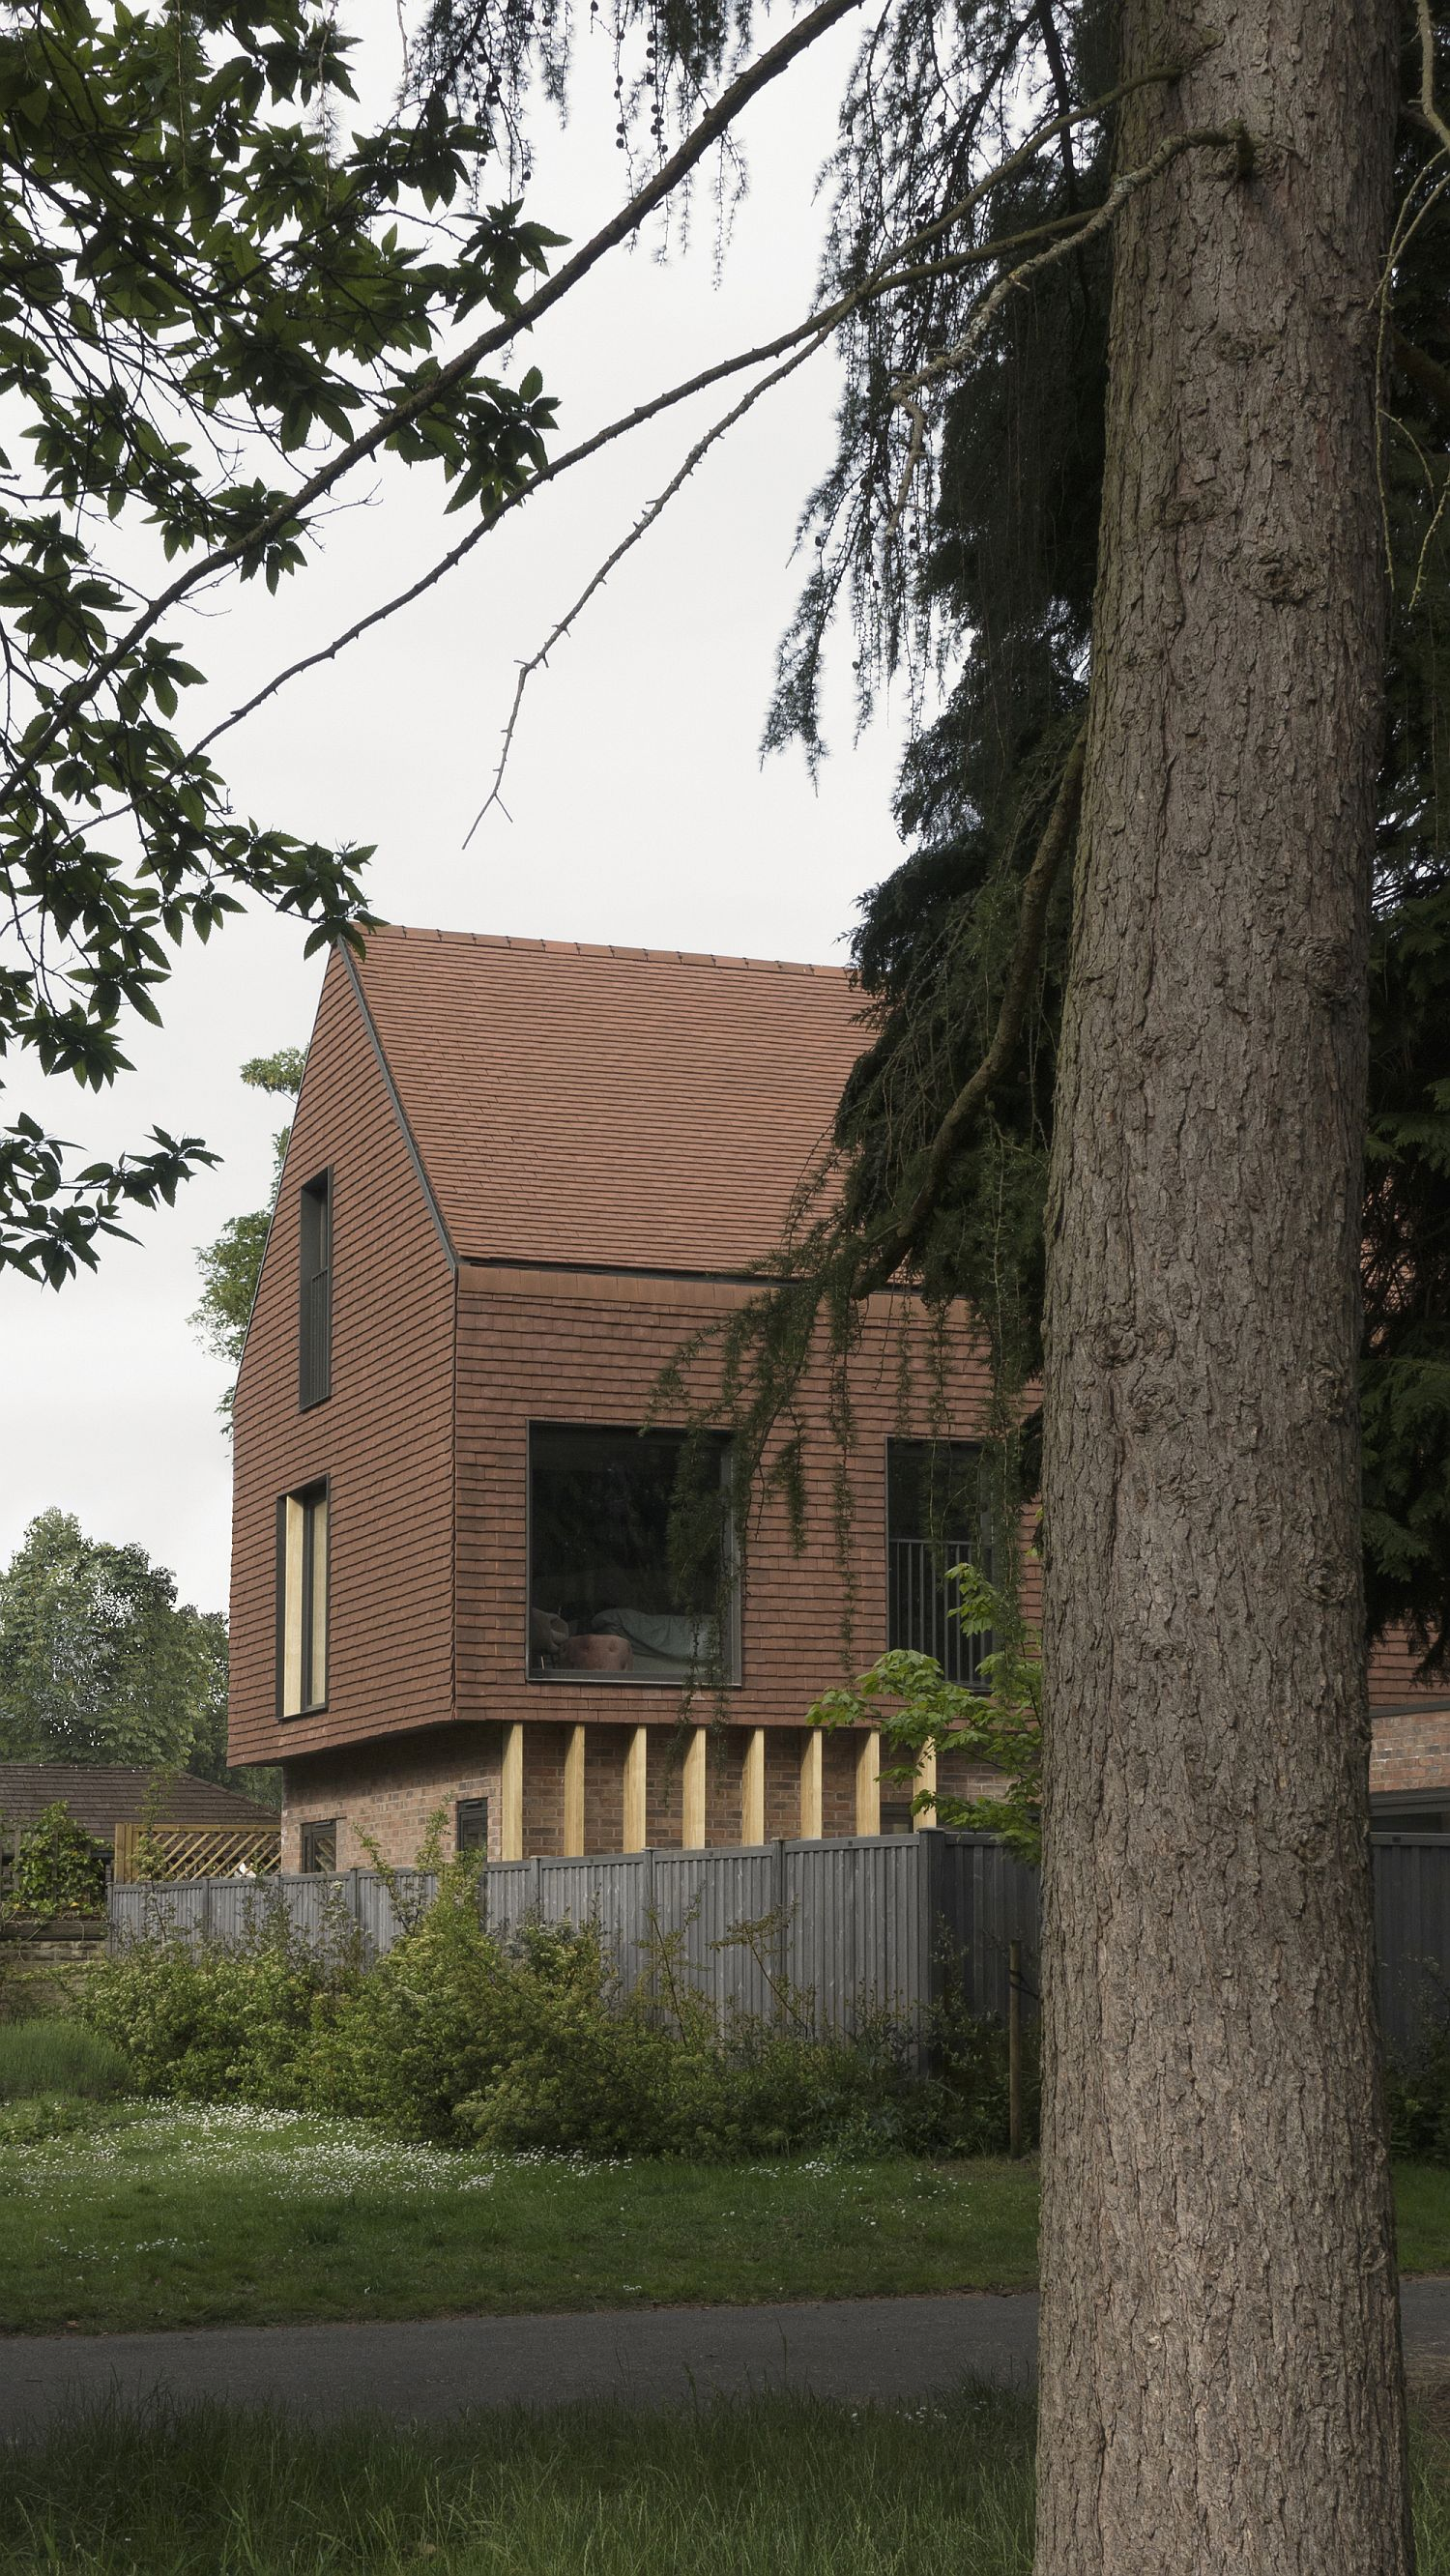 View of the Terracotta House from a distance gives it a classic appeal